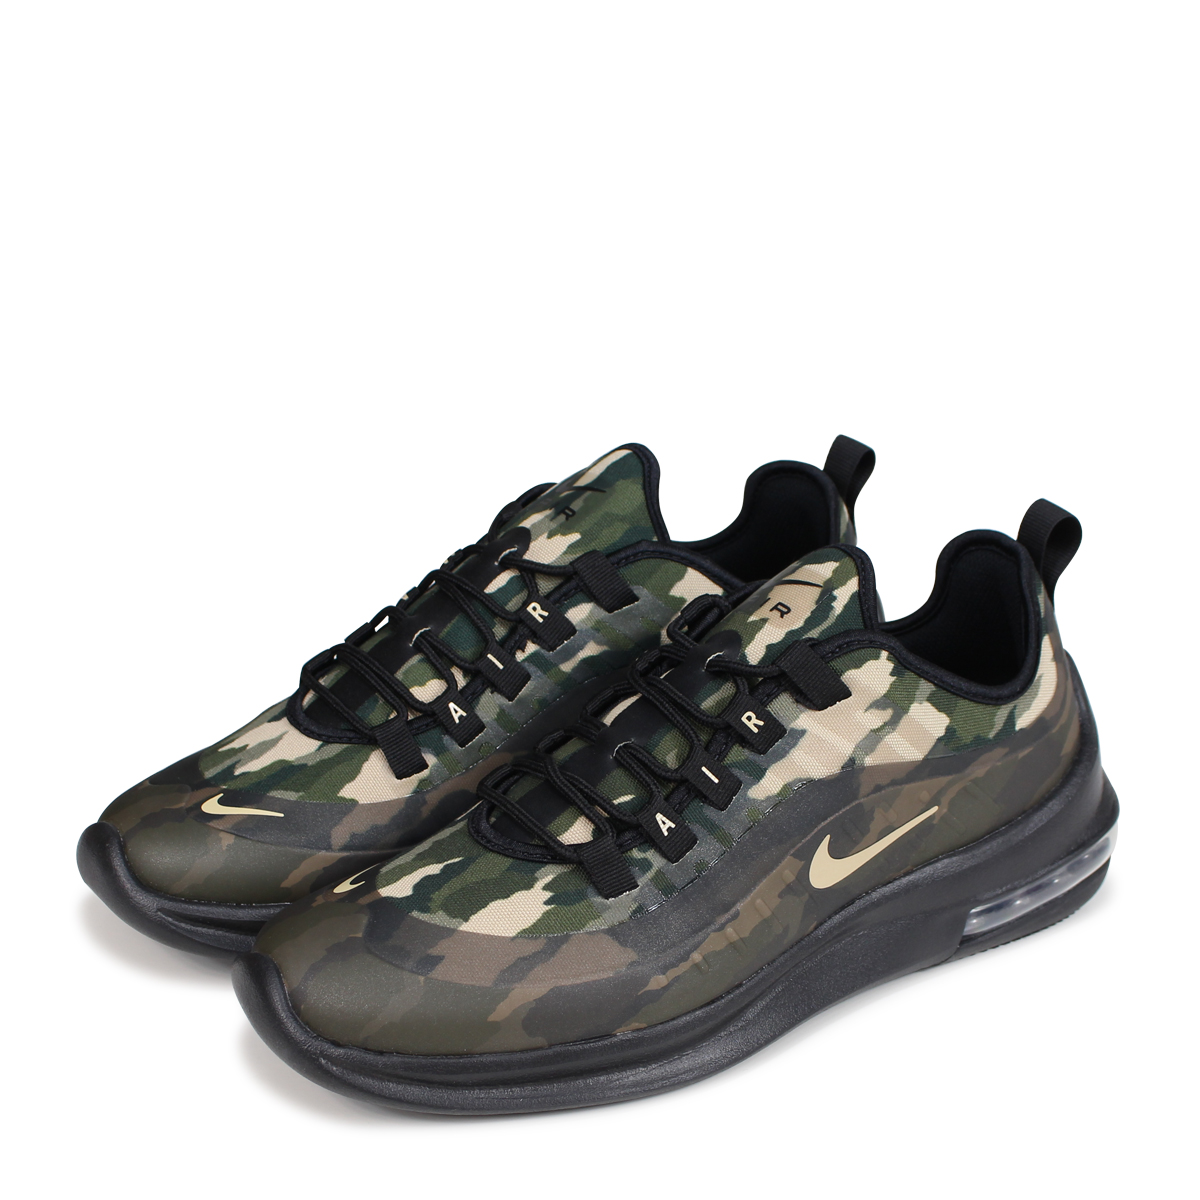 NIKE AIR MAX AXIS PREMIUM Kie Ney AMAX axis sneakers men AA2148 002 duck